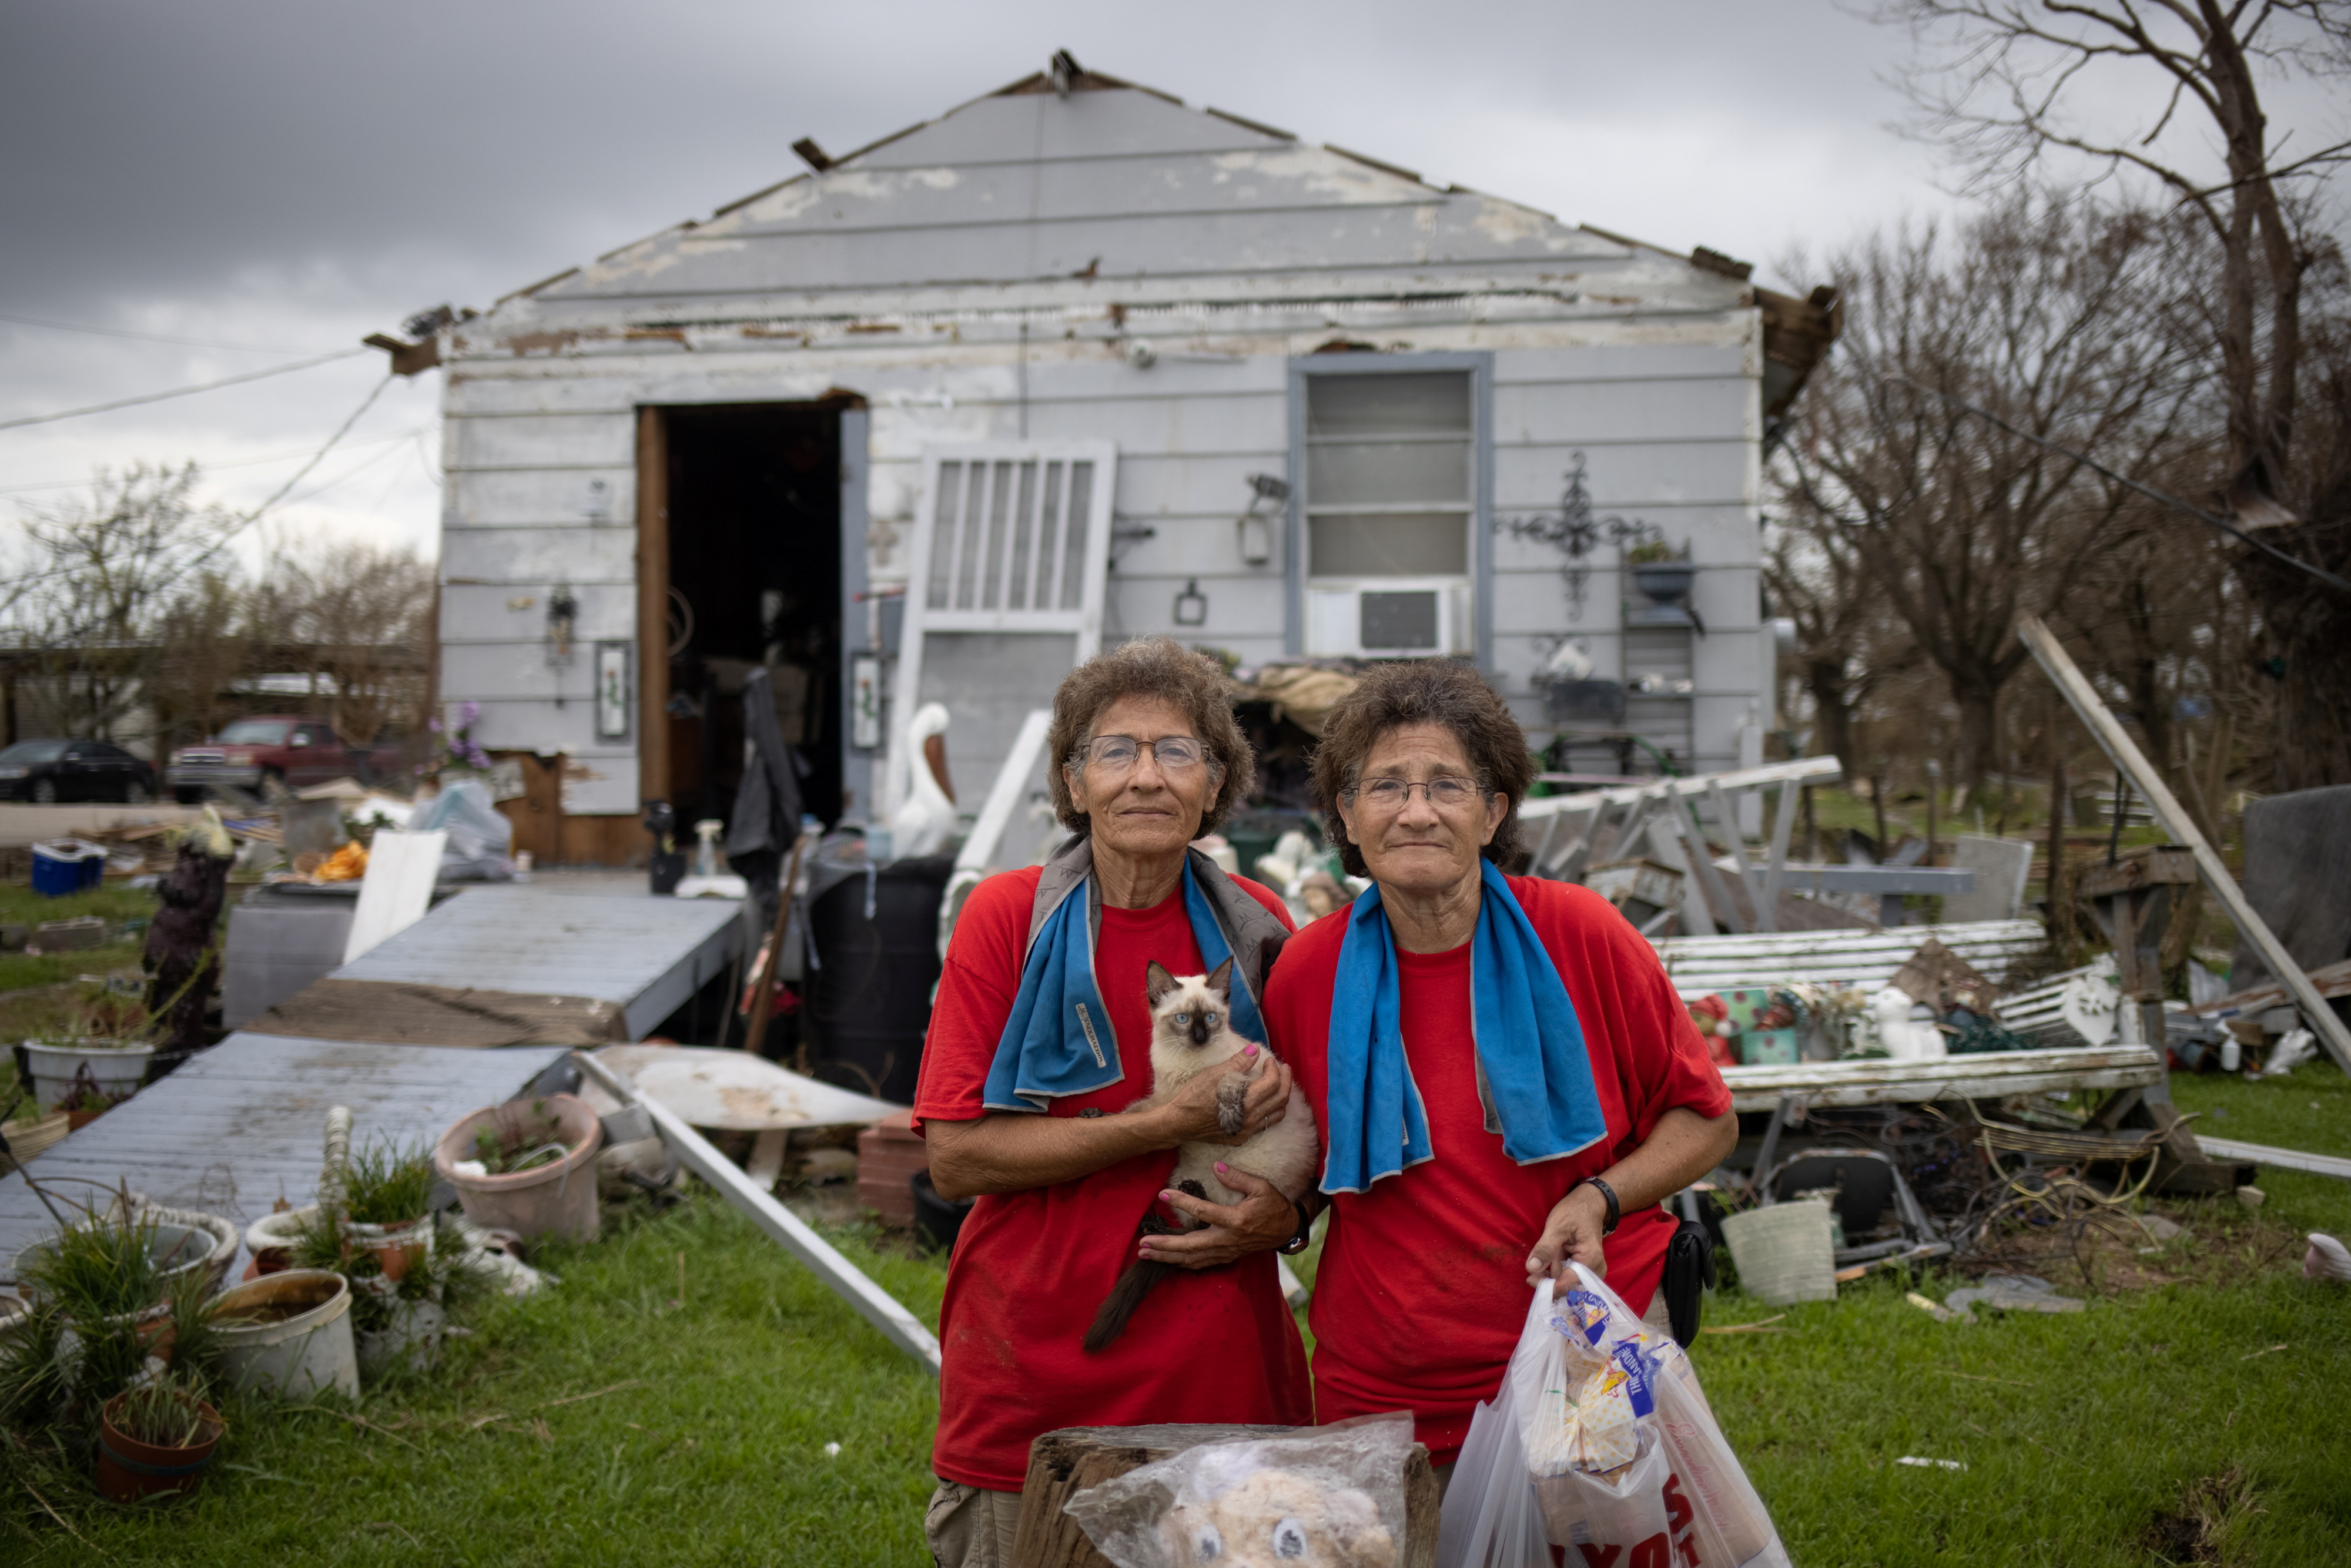 Twin sisters Bridget and Rosalie Serigny, 66, hold their cat Frost as they pose for a photograph after returning to their damaged home in the aftermath of Hurricane Ida in Golden Meadow, Louisiana, U.S., September 1, 2021. The sisters said the category 4 hurricane destroyed the roof of their house and chicken coop. REUTERS/Adrees Latif